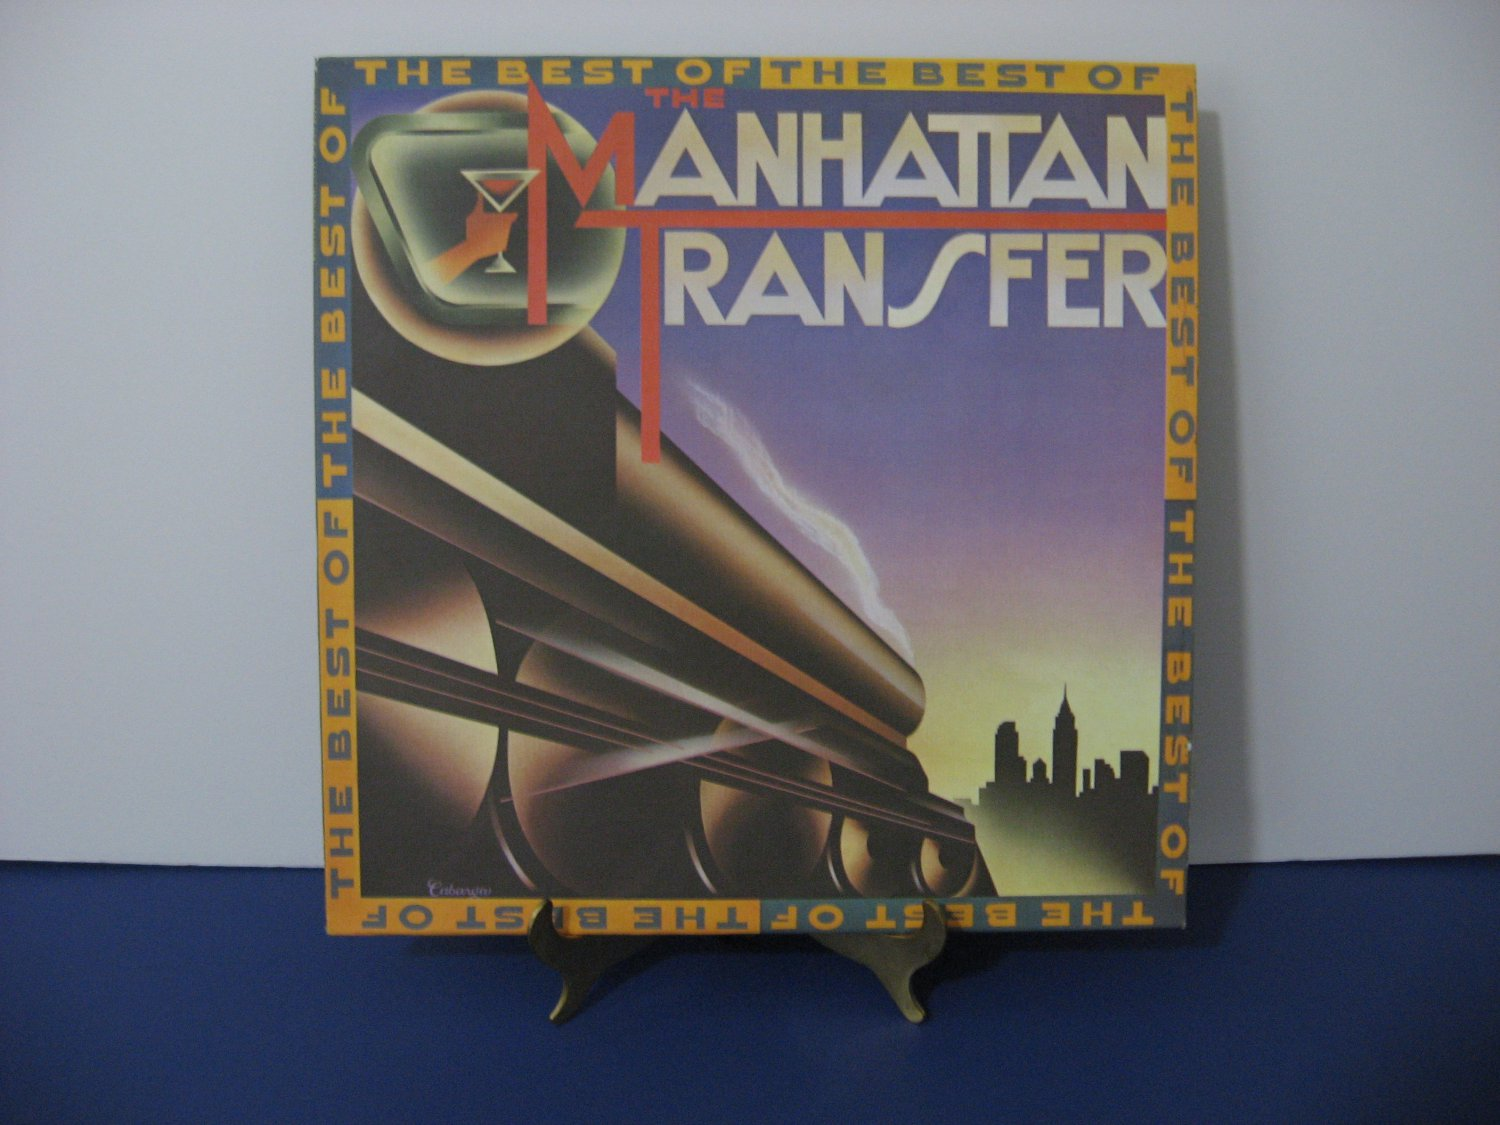 The Manhattan Transfer - The Best Of The Manhattan Transfer - Circa 1981